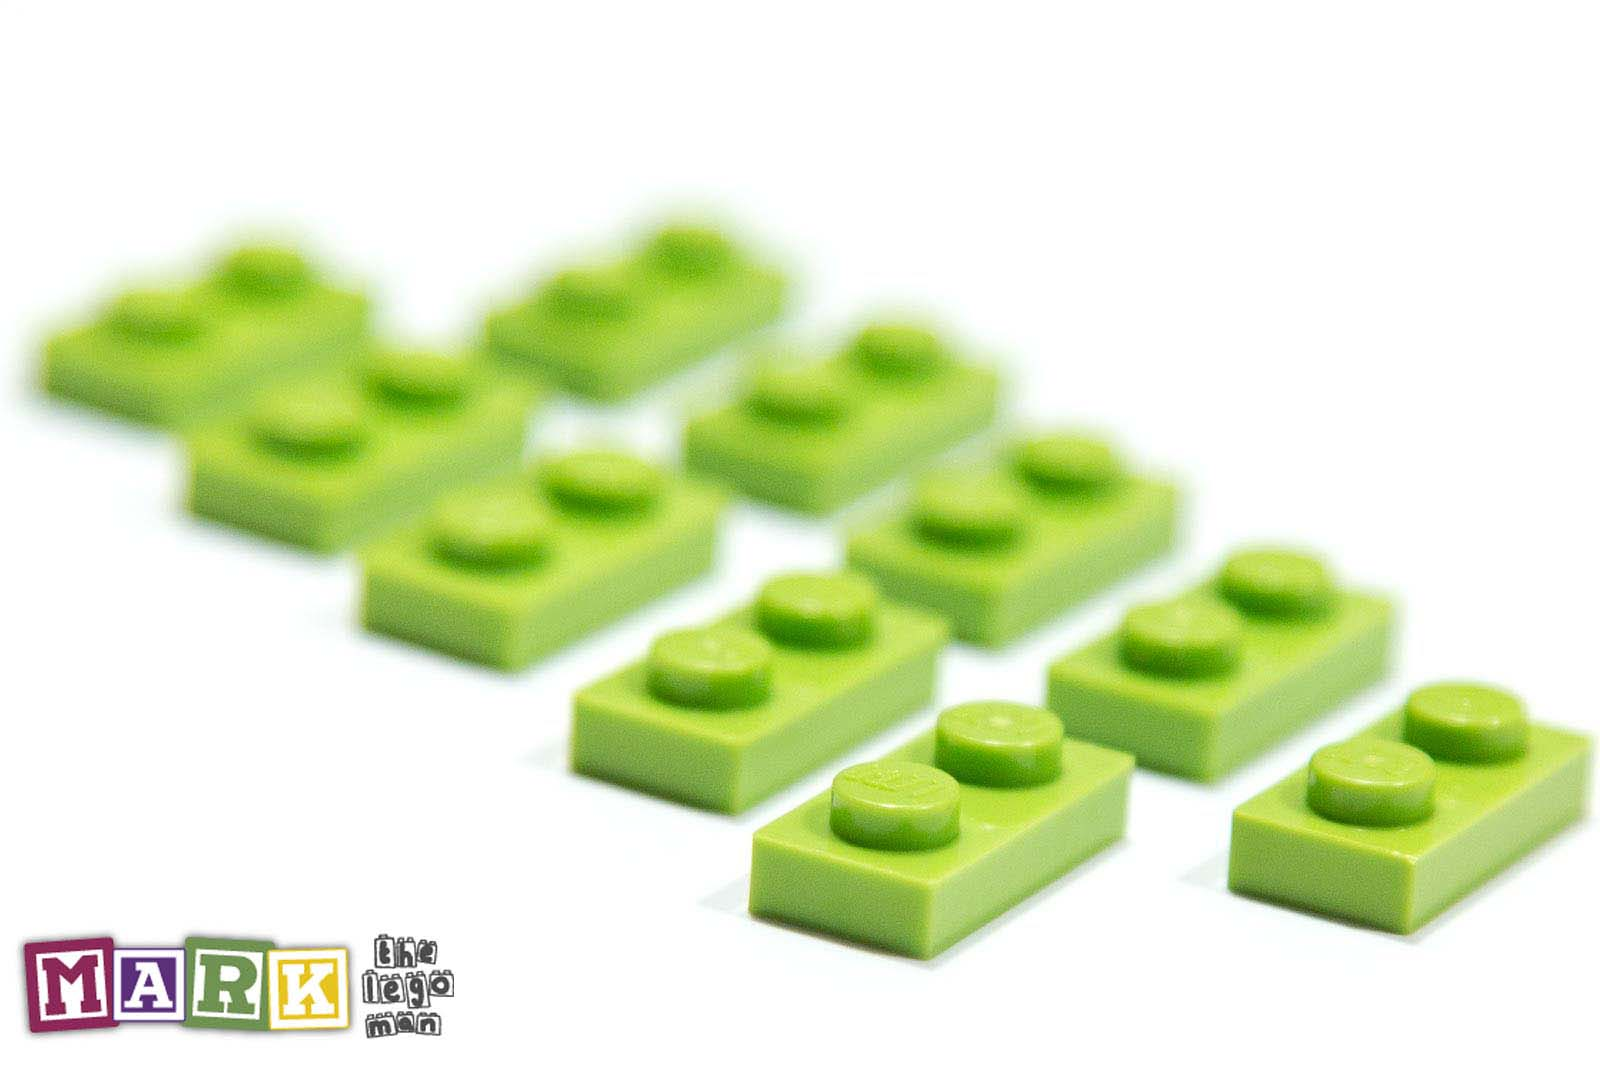 4164037 3023 Job Lot 10x Bright Yellow Green 1x2 Plate